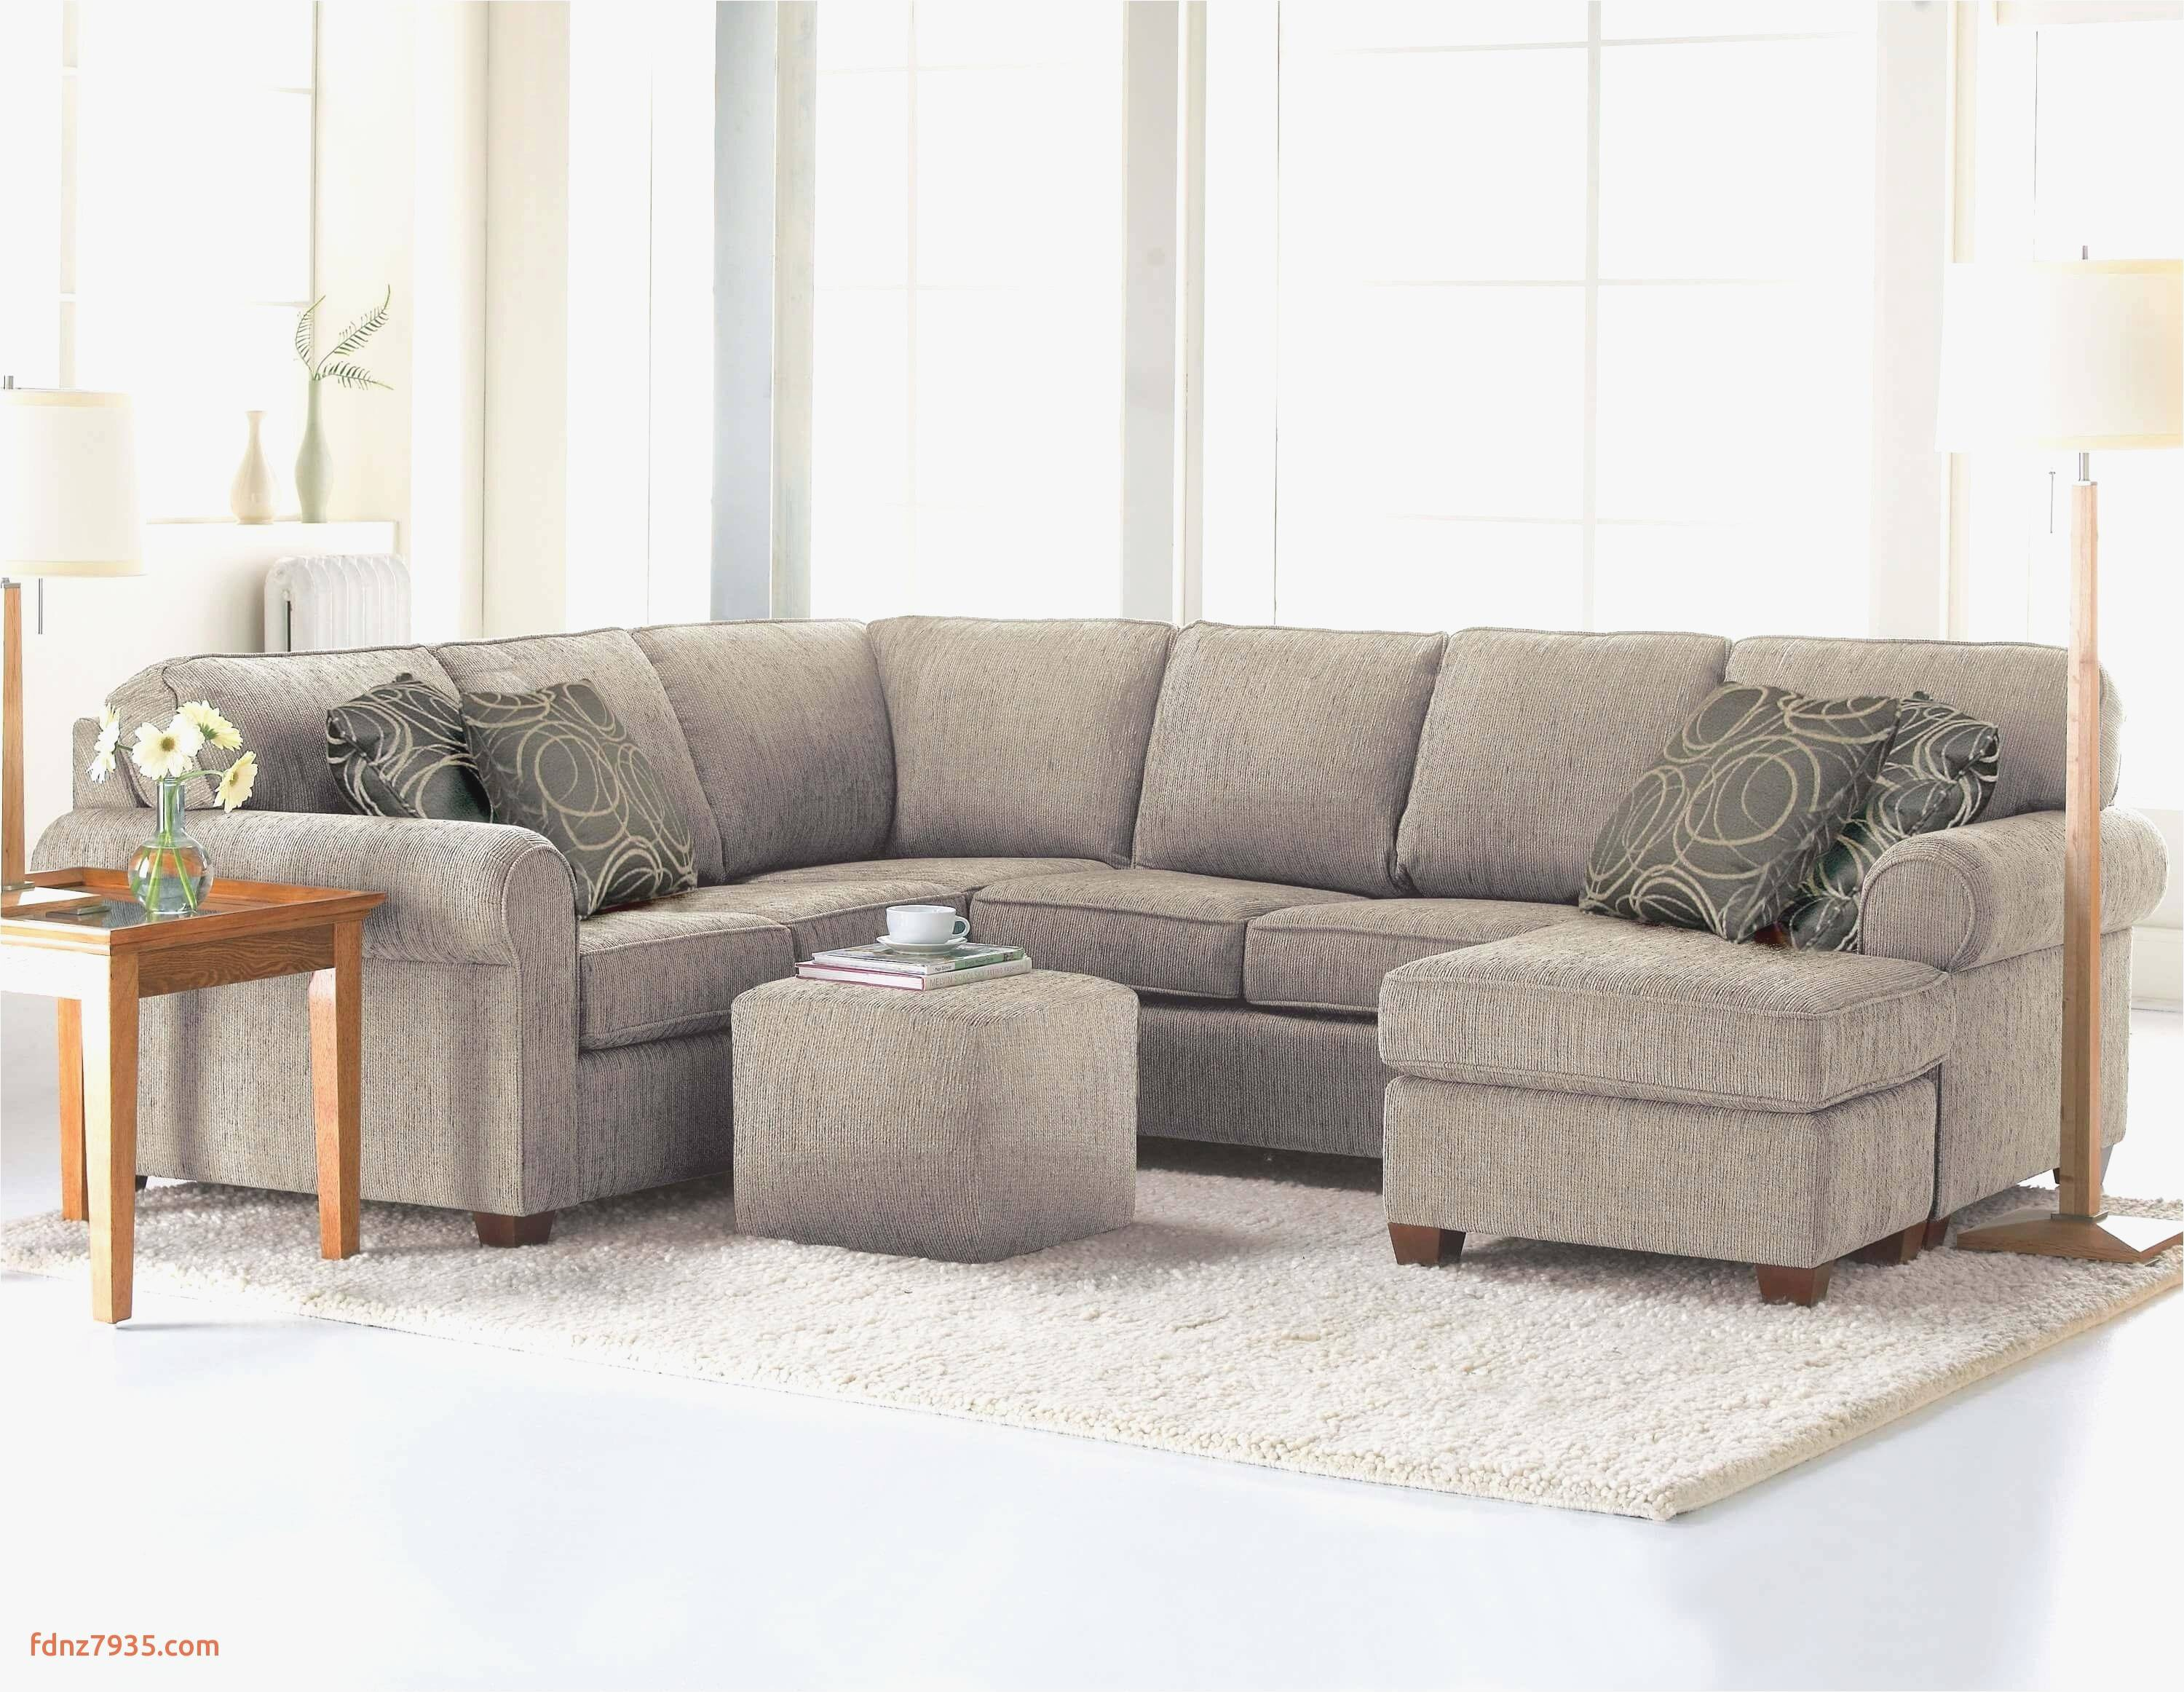 best coffee table for brown leather couch news brown leather sofa and loveseat fresh sofa design of best coffee table for brown leather couch